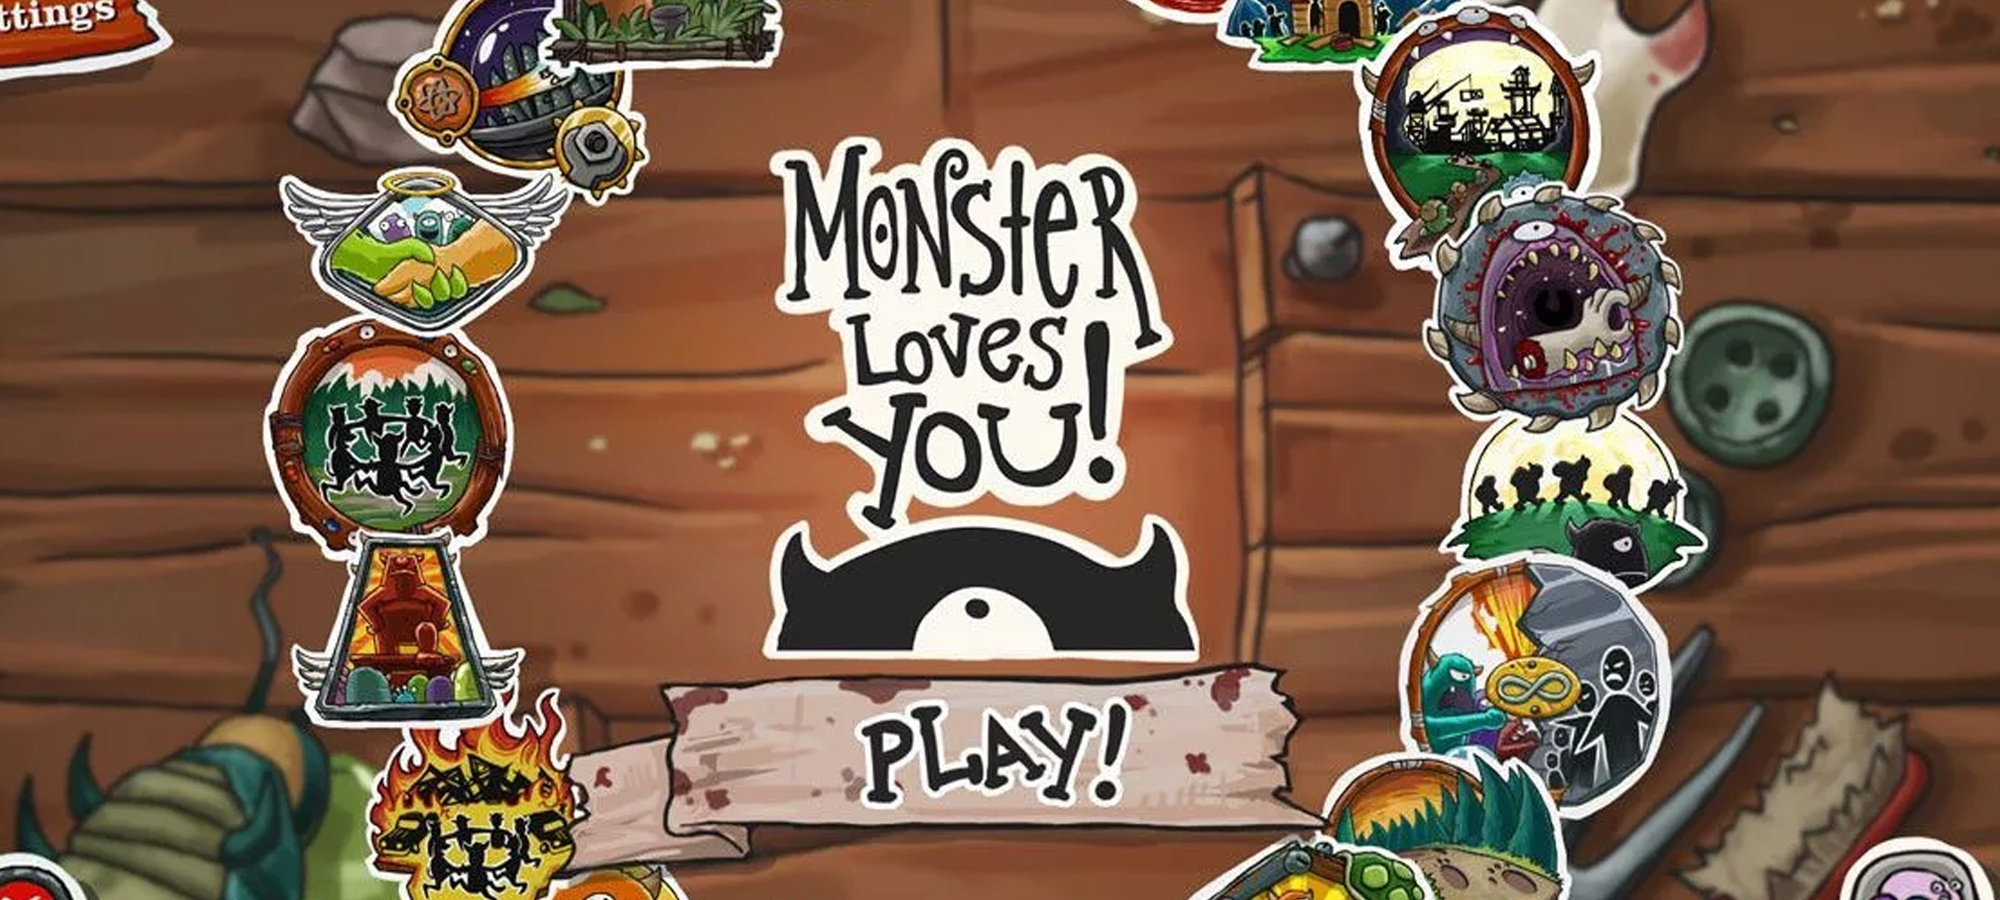 Monsters Loves You